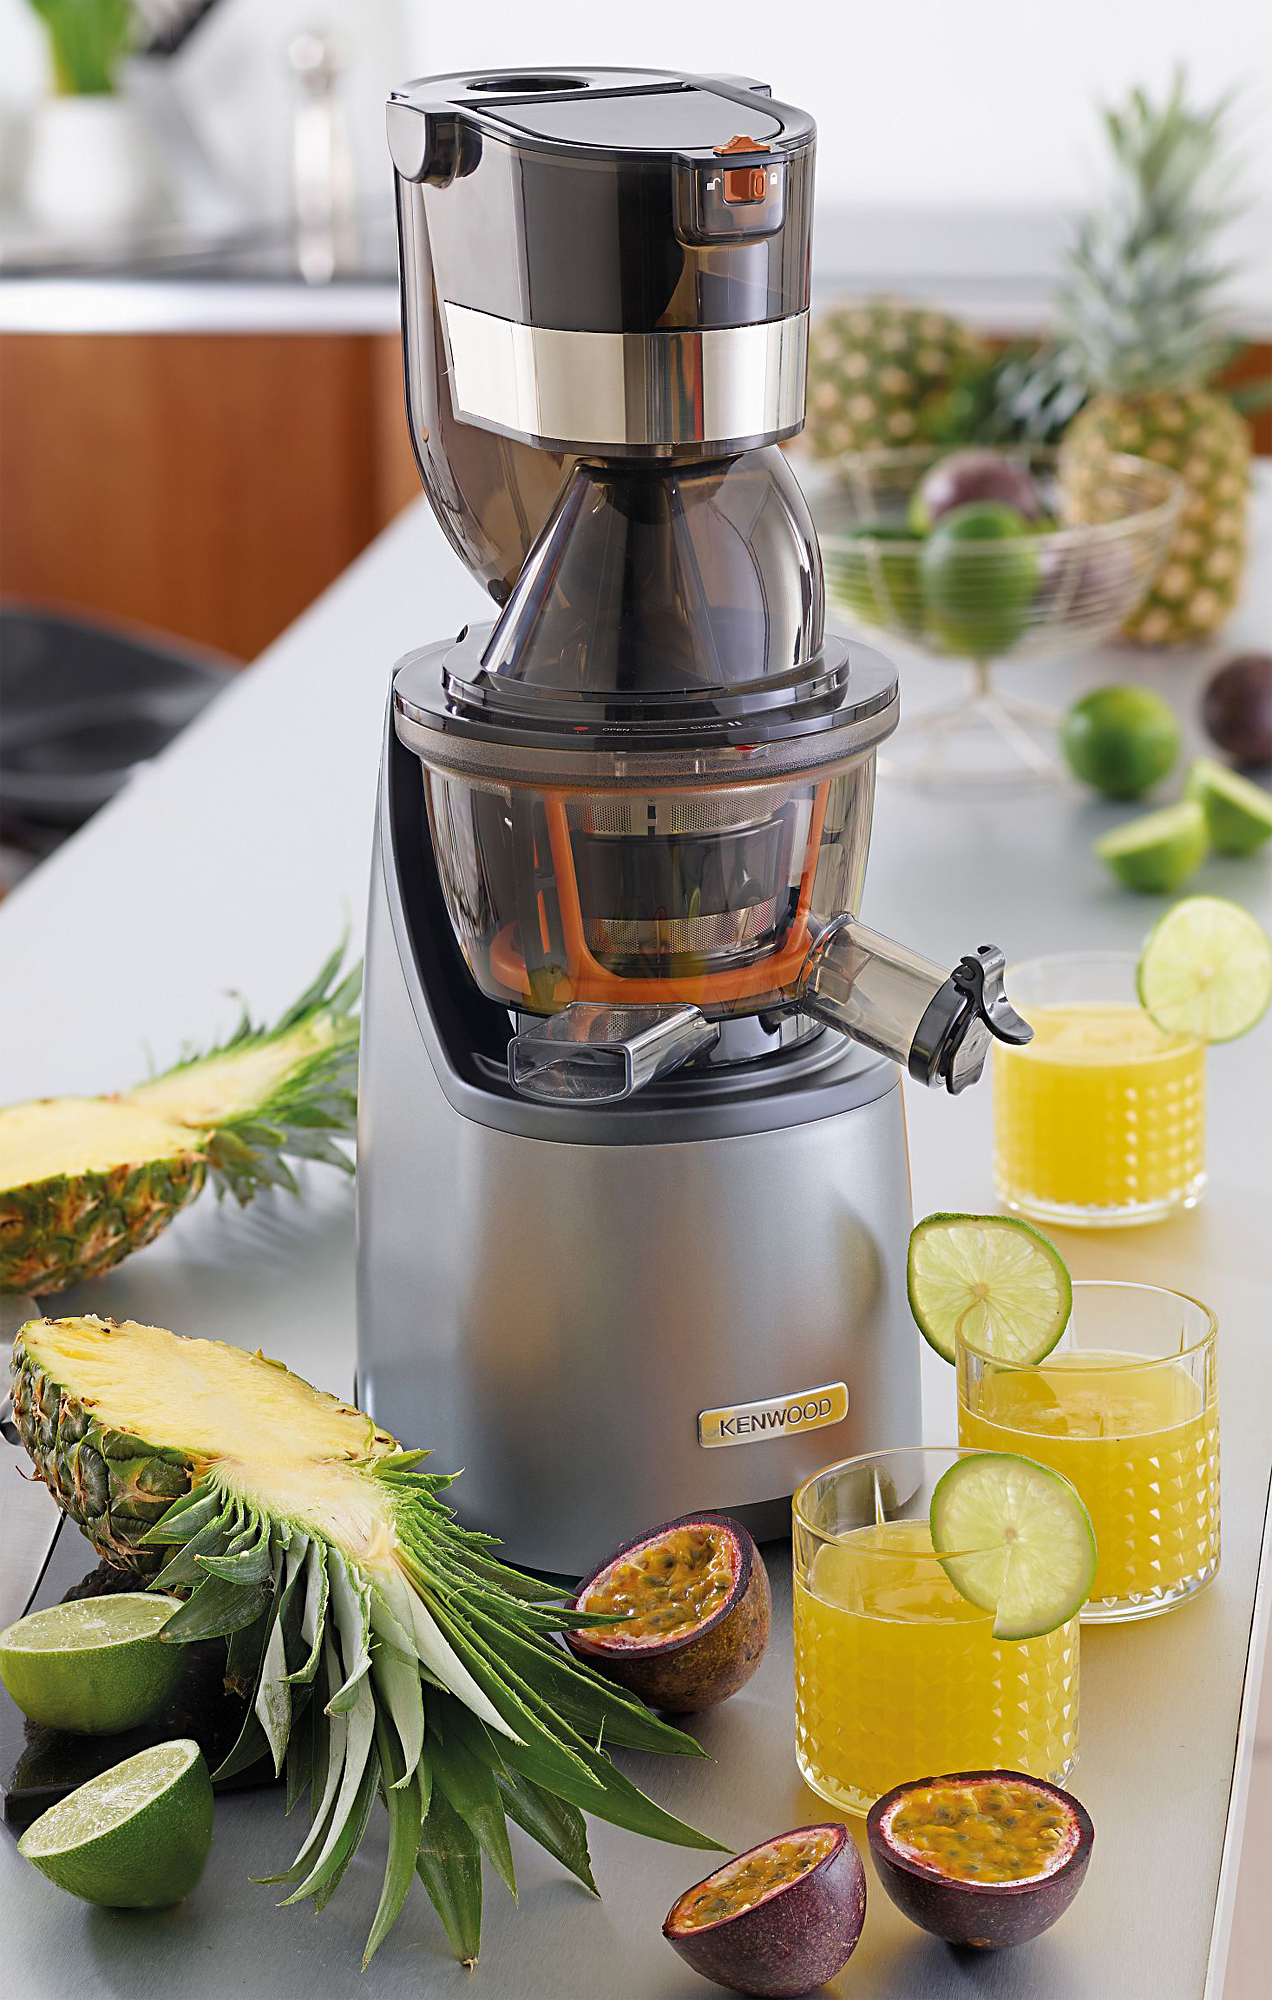 Kenwood Slow Juicer Erfahrungen : Kenwood Entsafter Slow Juicer JMP800SI